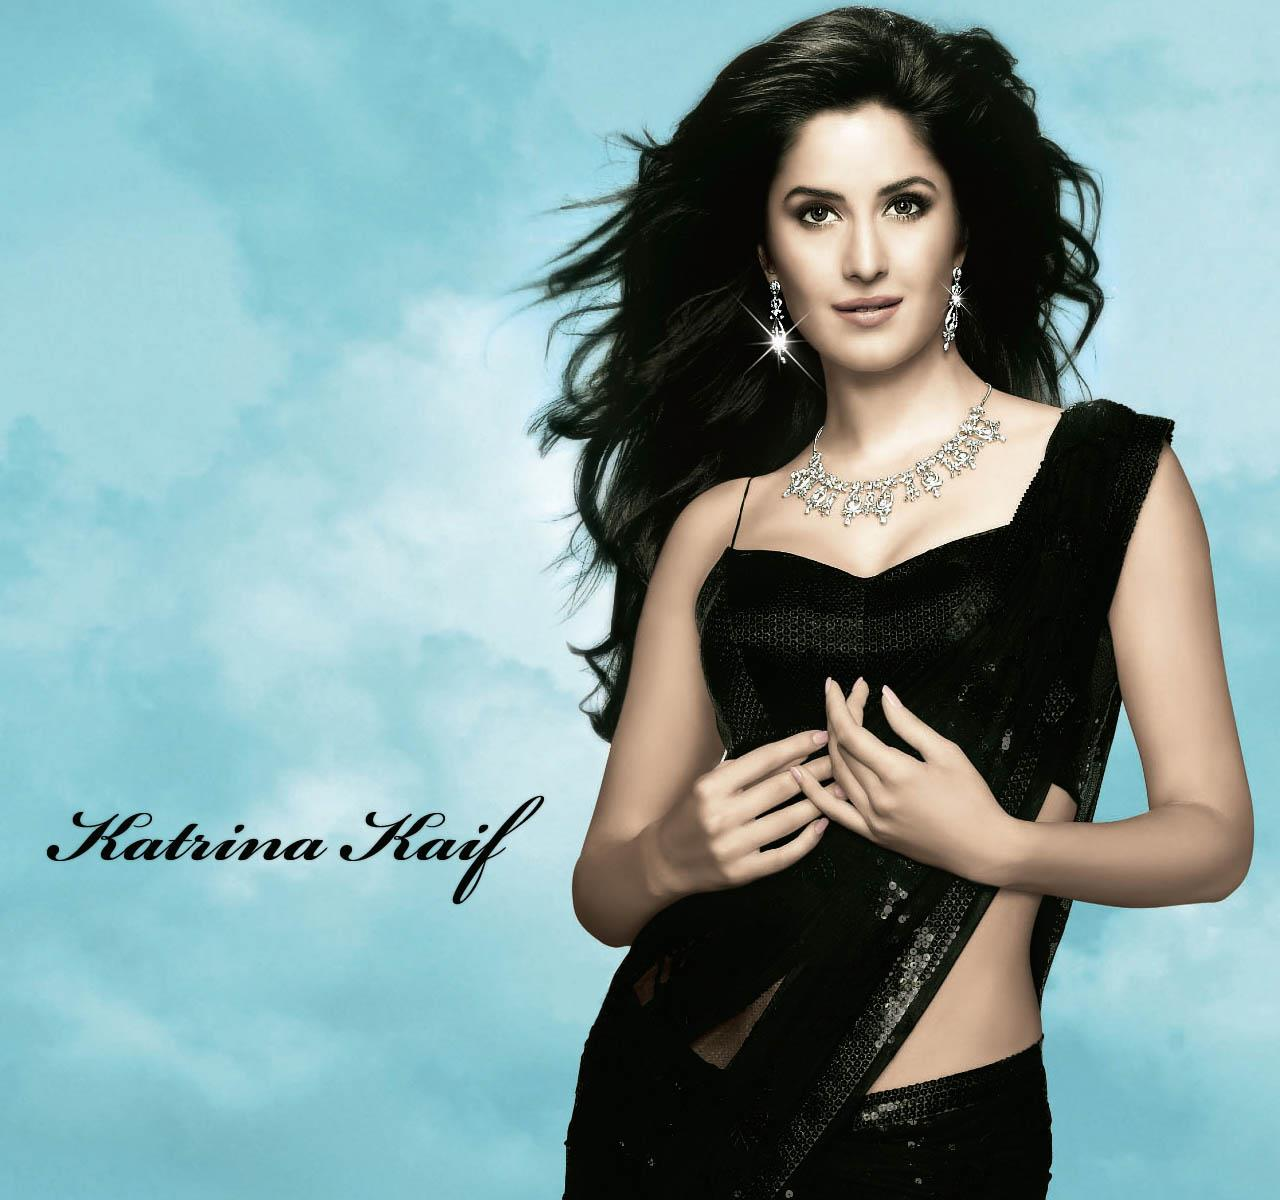 Wallpapers For Girls Spark Katrina Kaif In Black Saree Looks Awesome At A Jewellery